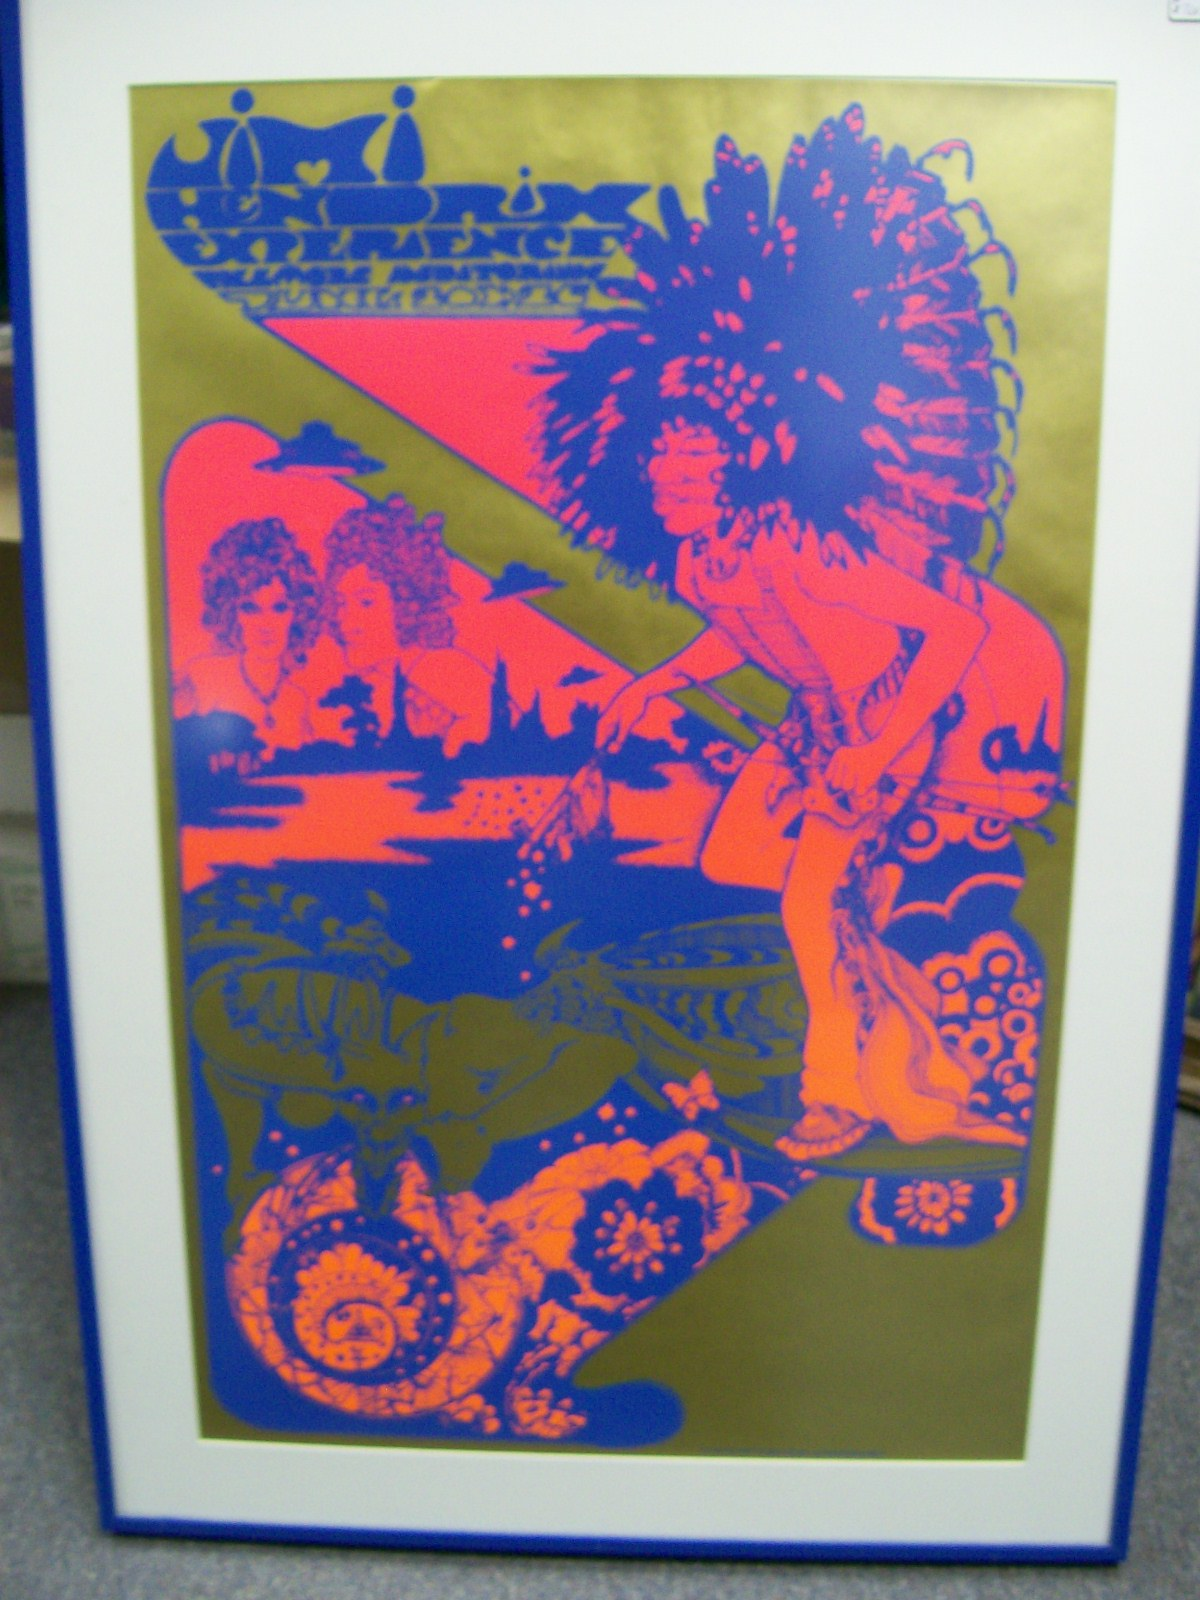 "JIMI HENDRIX EXPERIENCE POSTER RED,BLUE&GOLD 24""X34"""